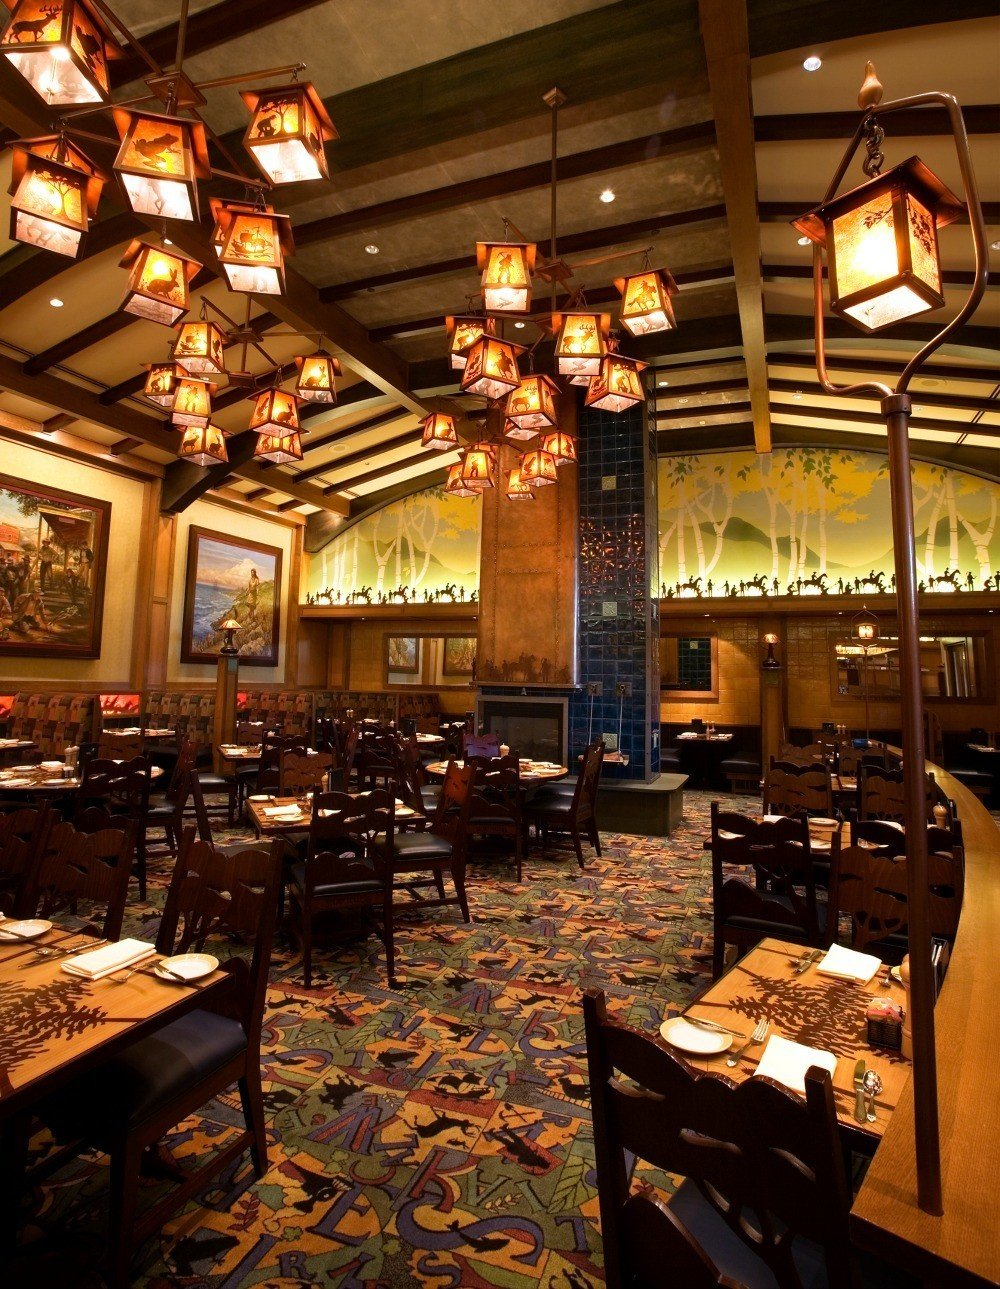 Storytellers Café, Disney's Grand Californian Hotel & Spa